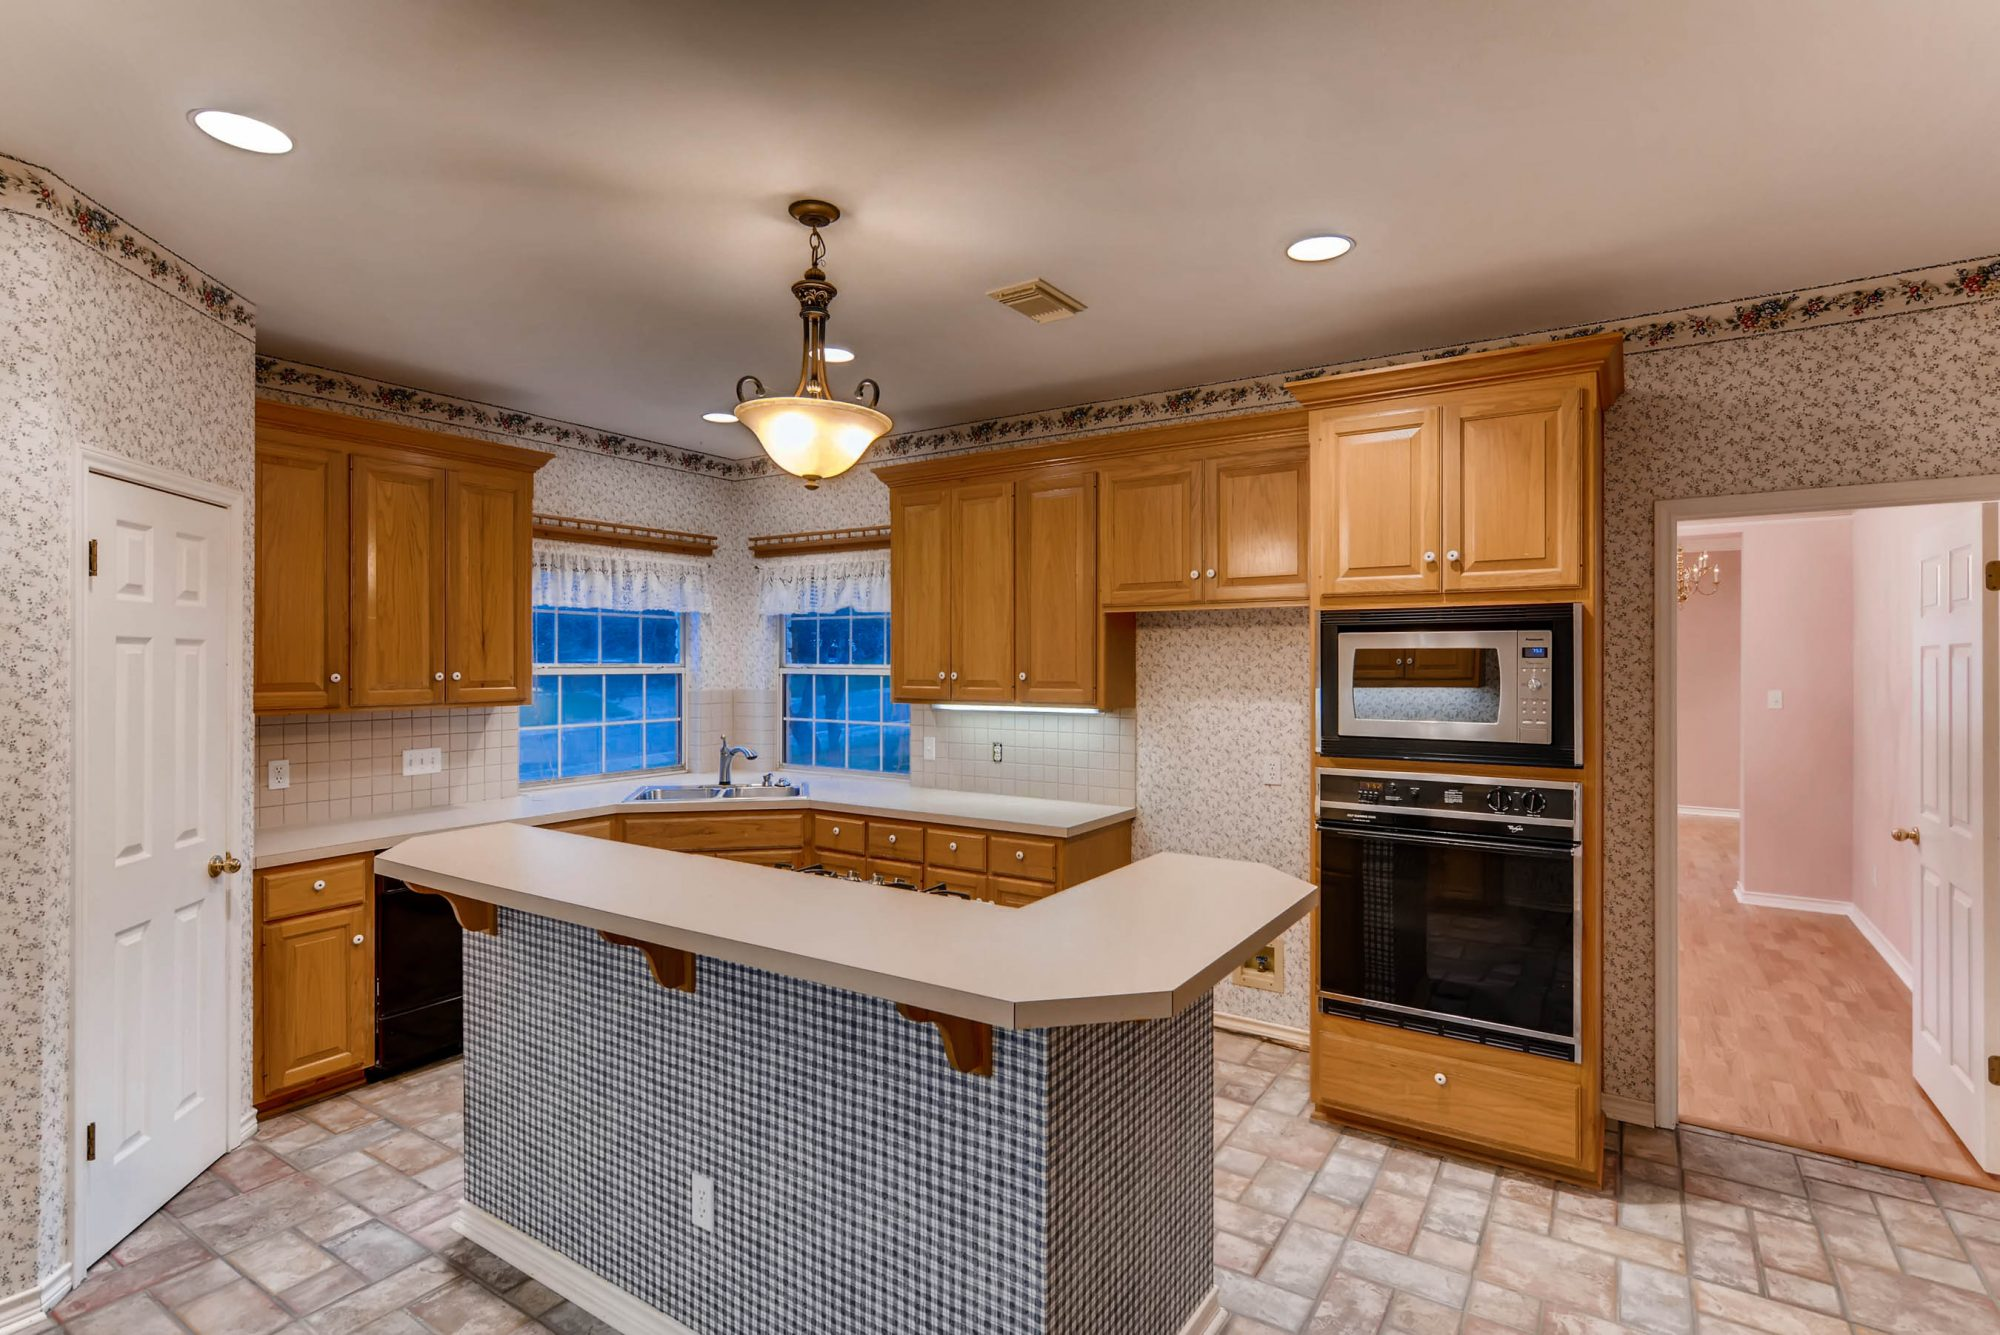 2018 Southern Living Idea House Kitchen Before Shot